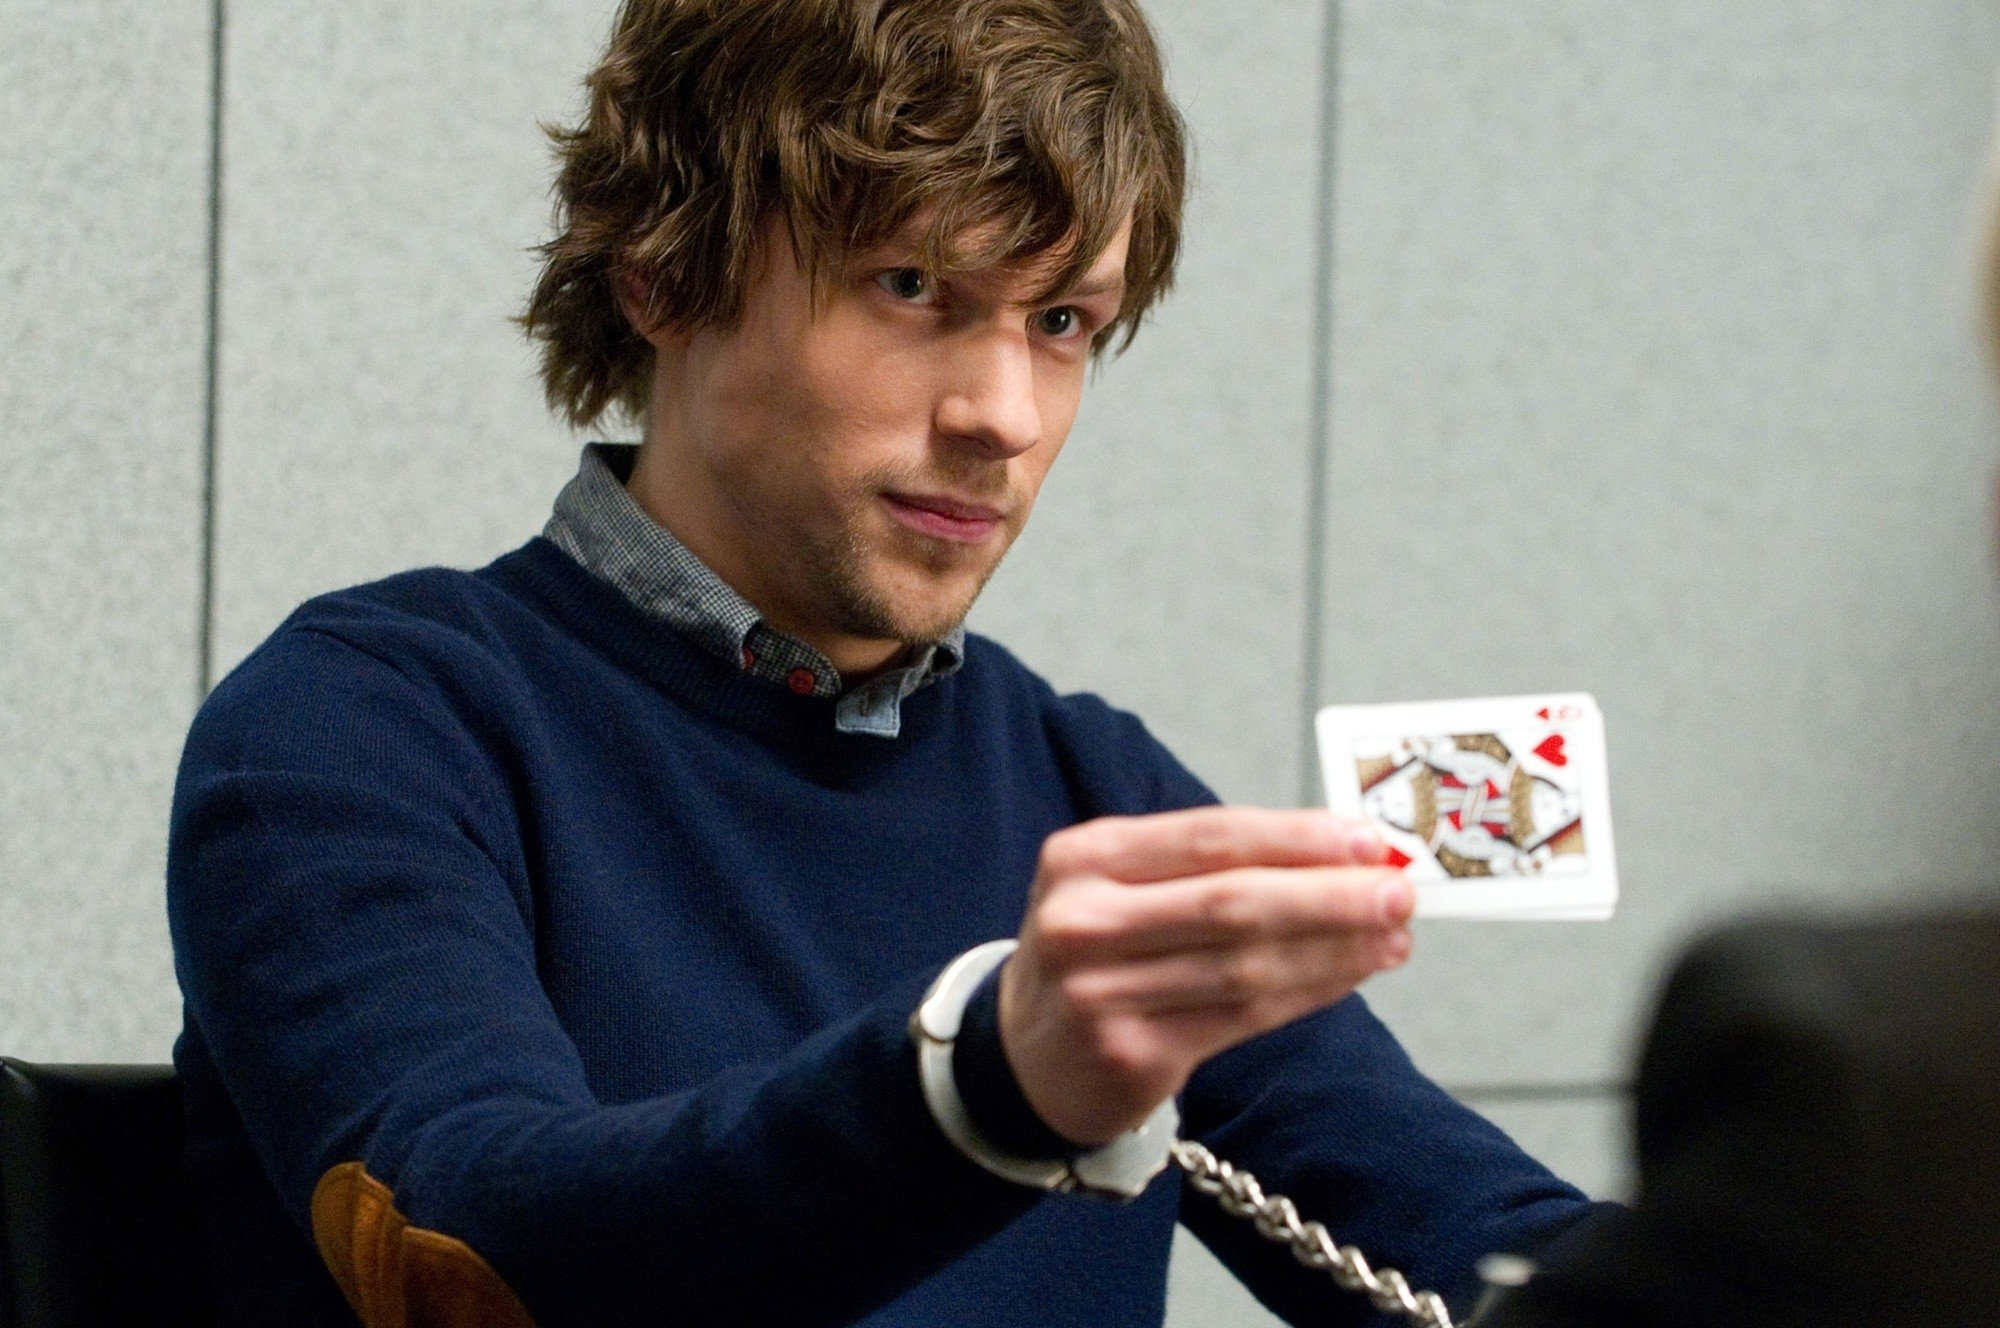 jesse-eisenberg-now-you-see-me-wallpaper-1